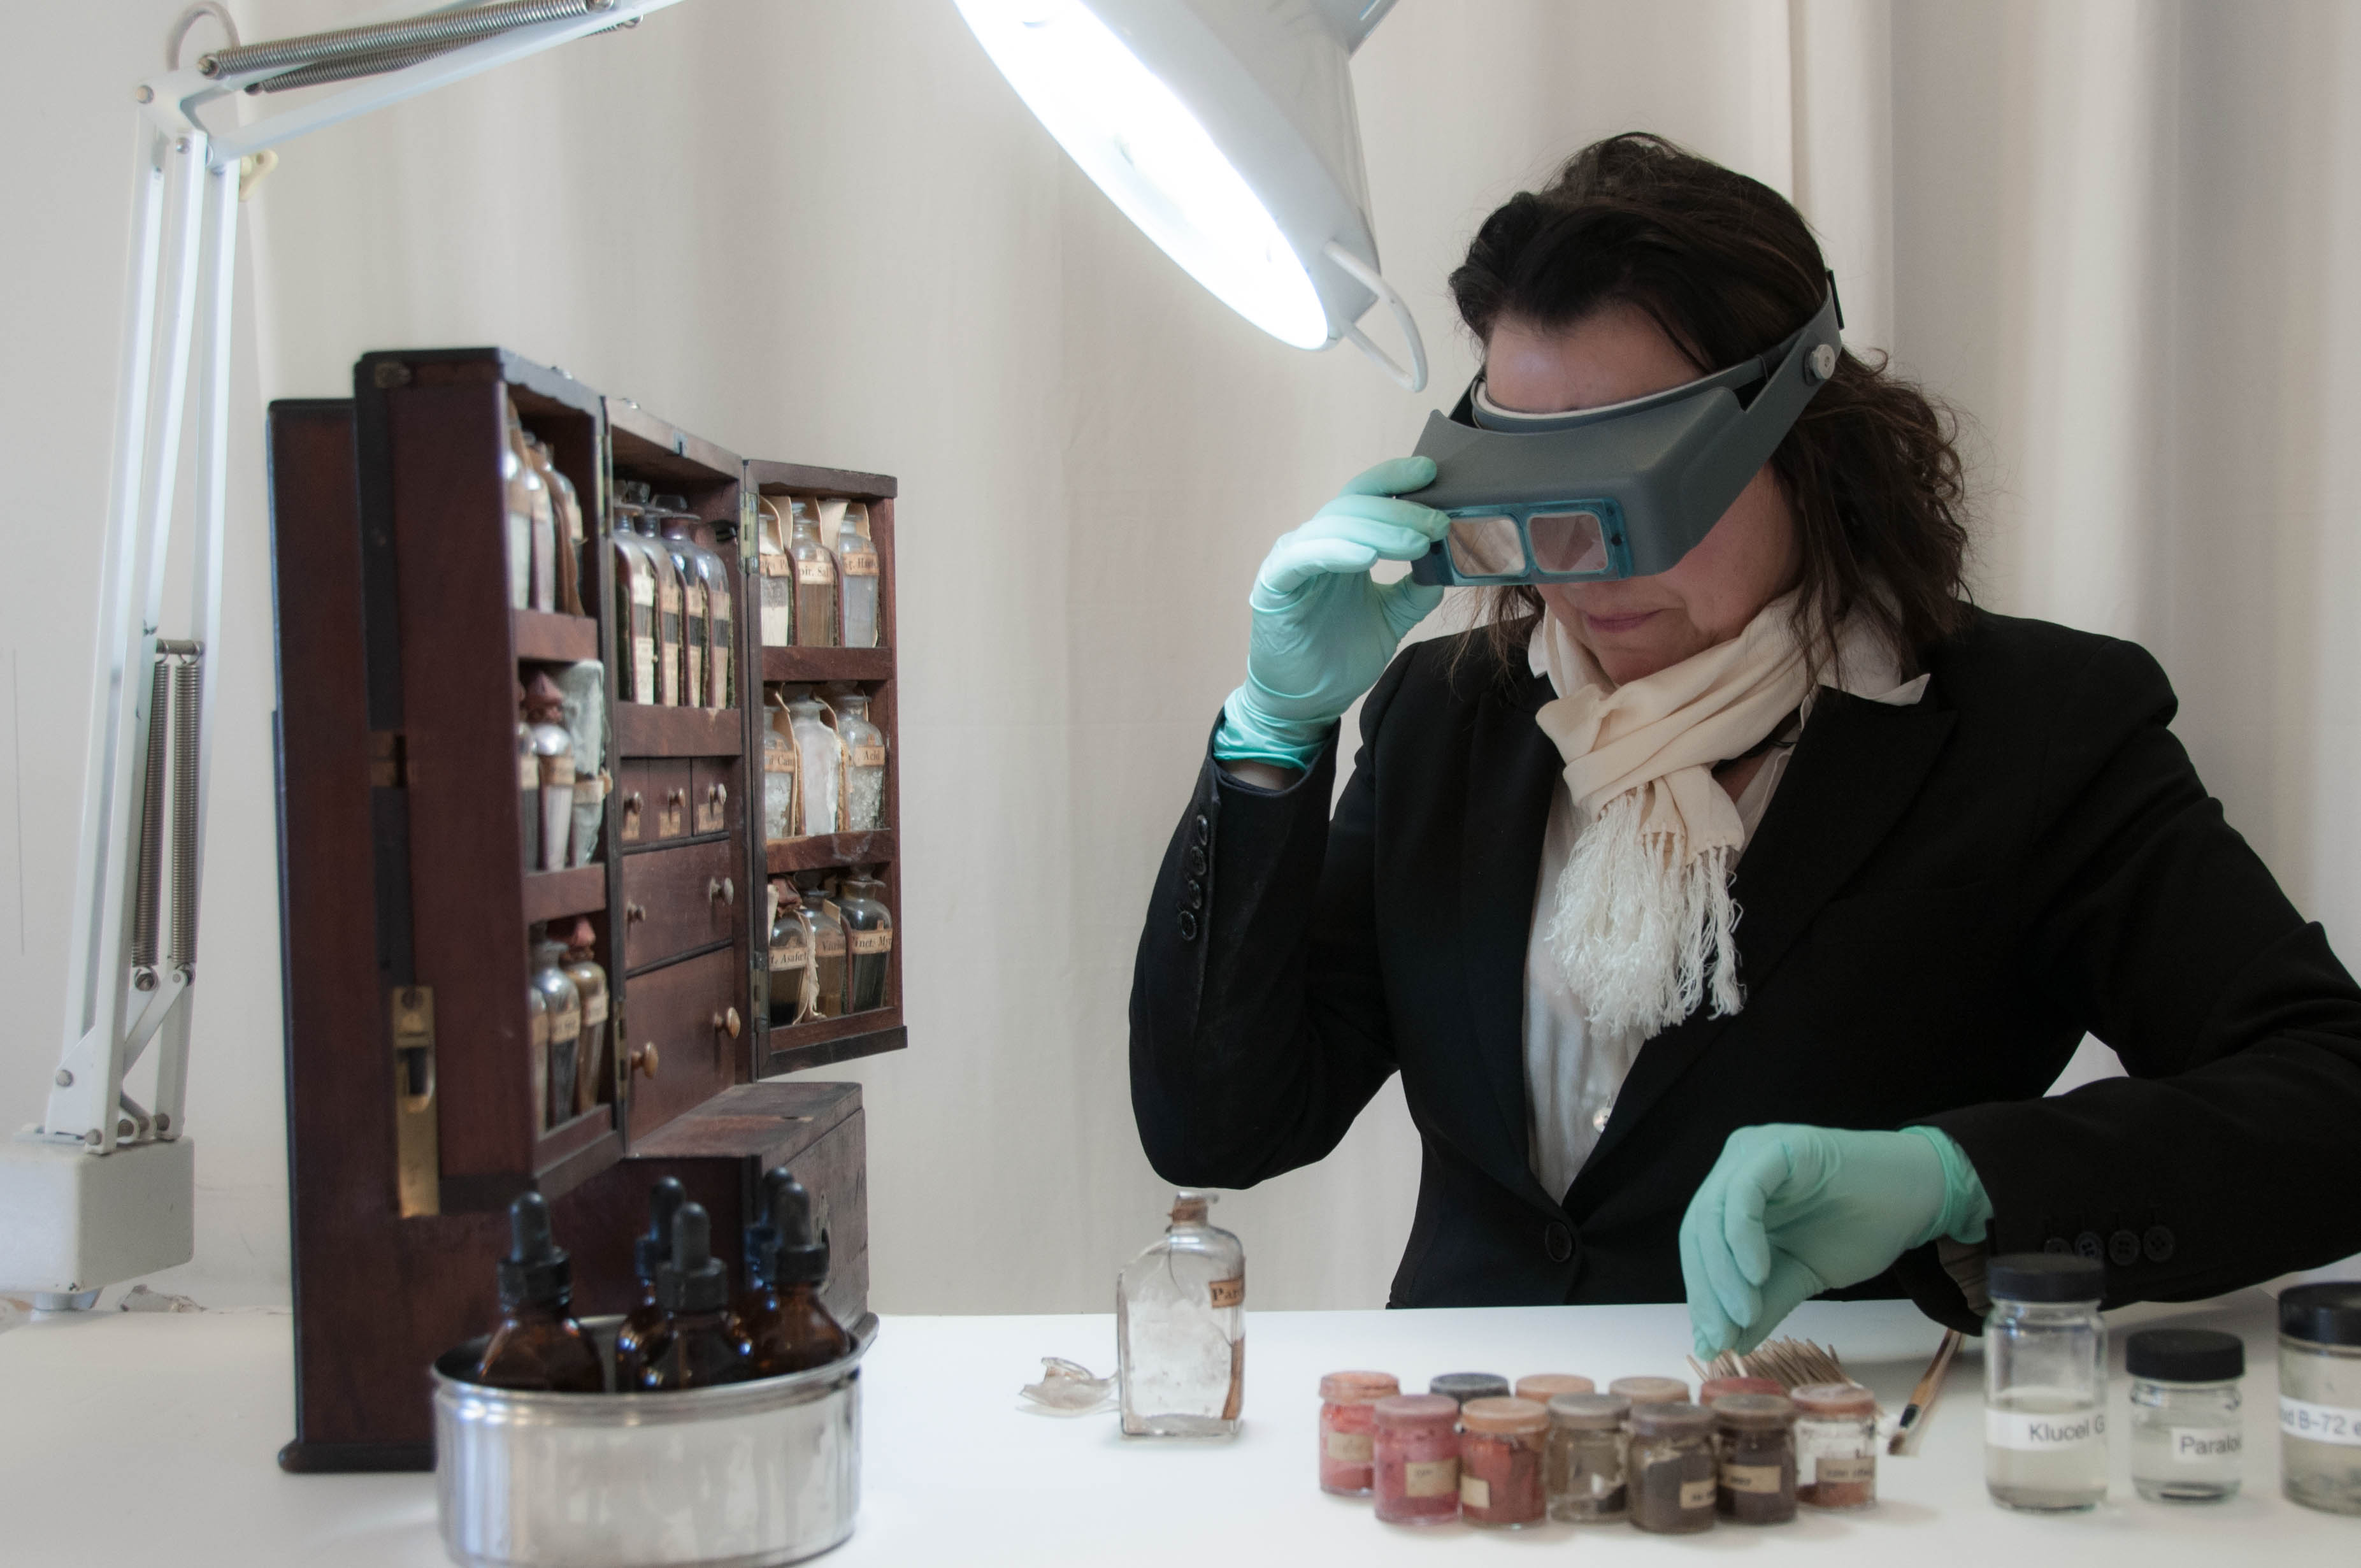 Conservator Linda Nieuwenhuizen at work on the King family medicine dispensary.